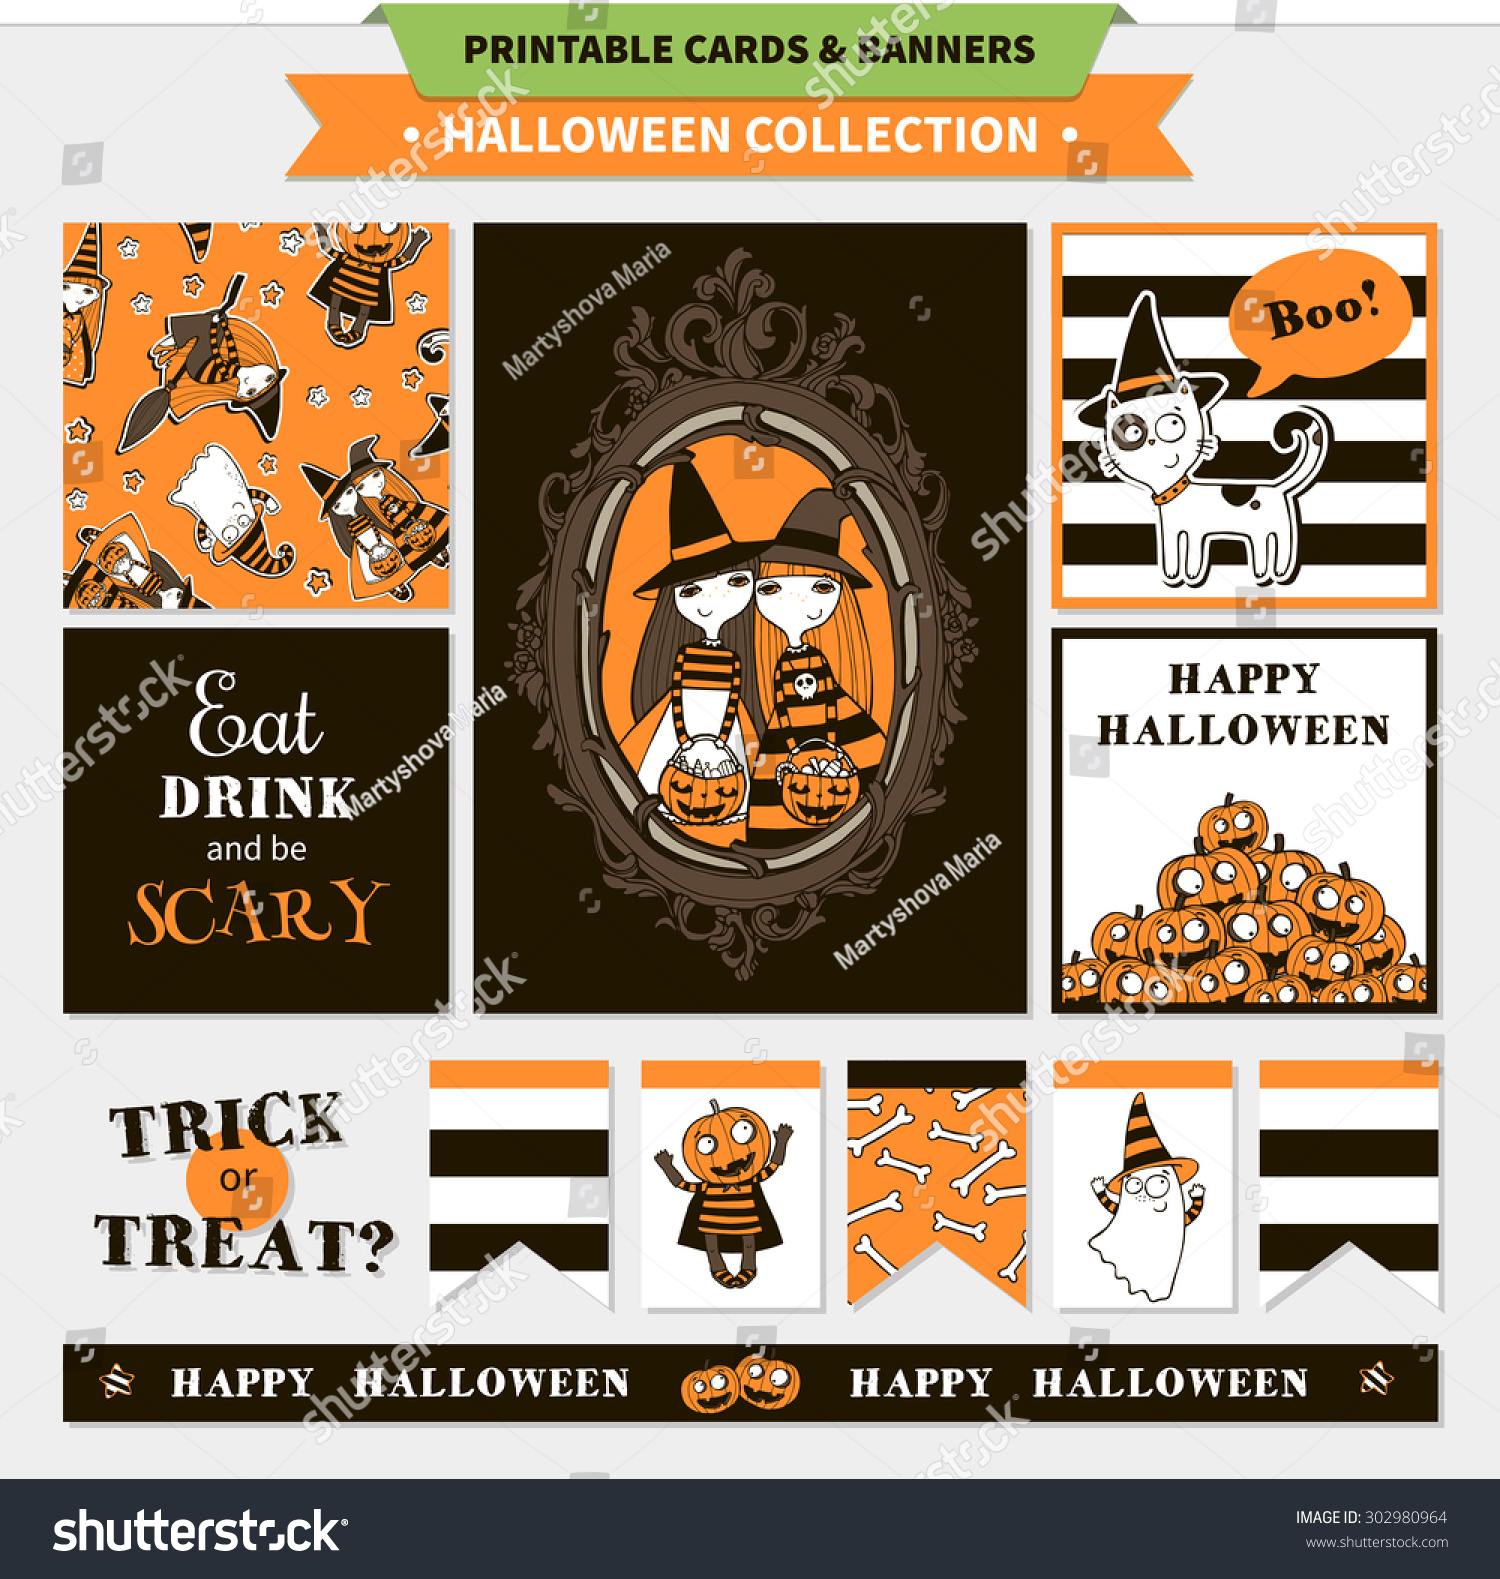 photo relating to Printable Halloween Banners named Halloween Printable Vector Playing cards Banners Cartoon Inventory